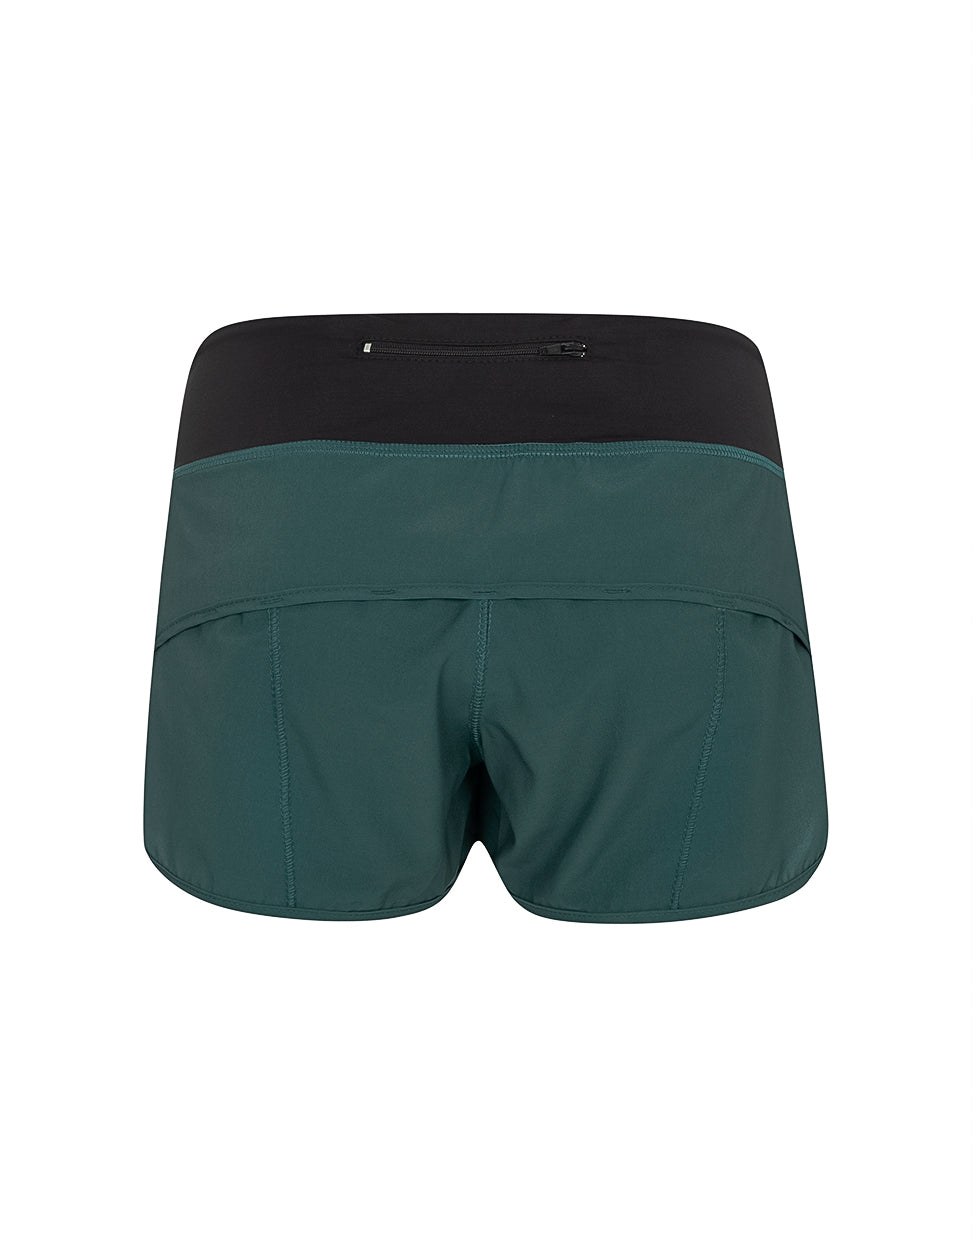 SHORTS BASIC COLORS VERDE